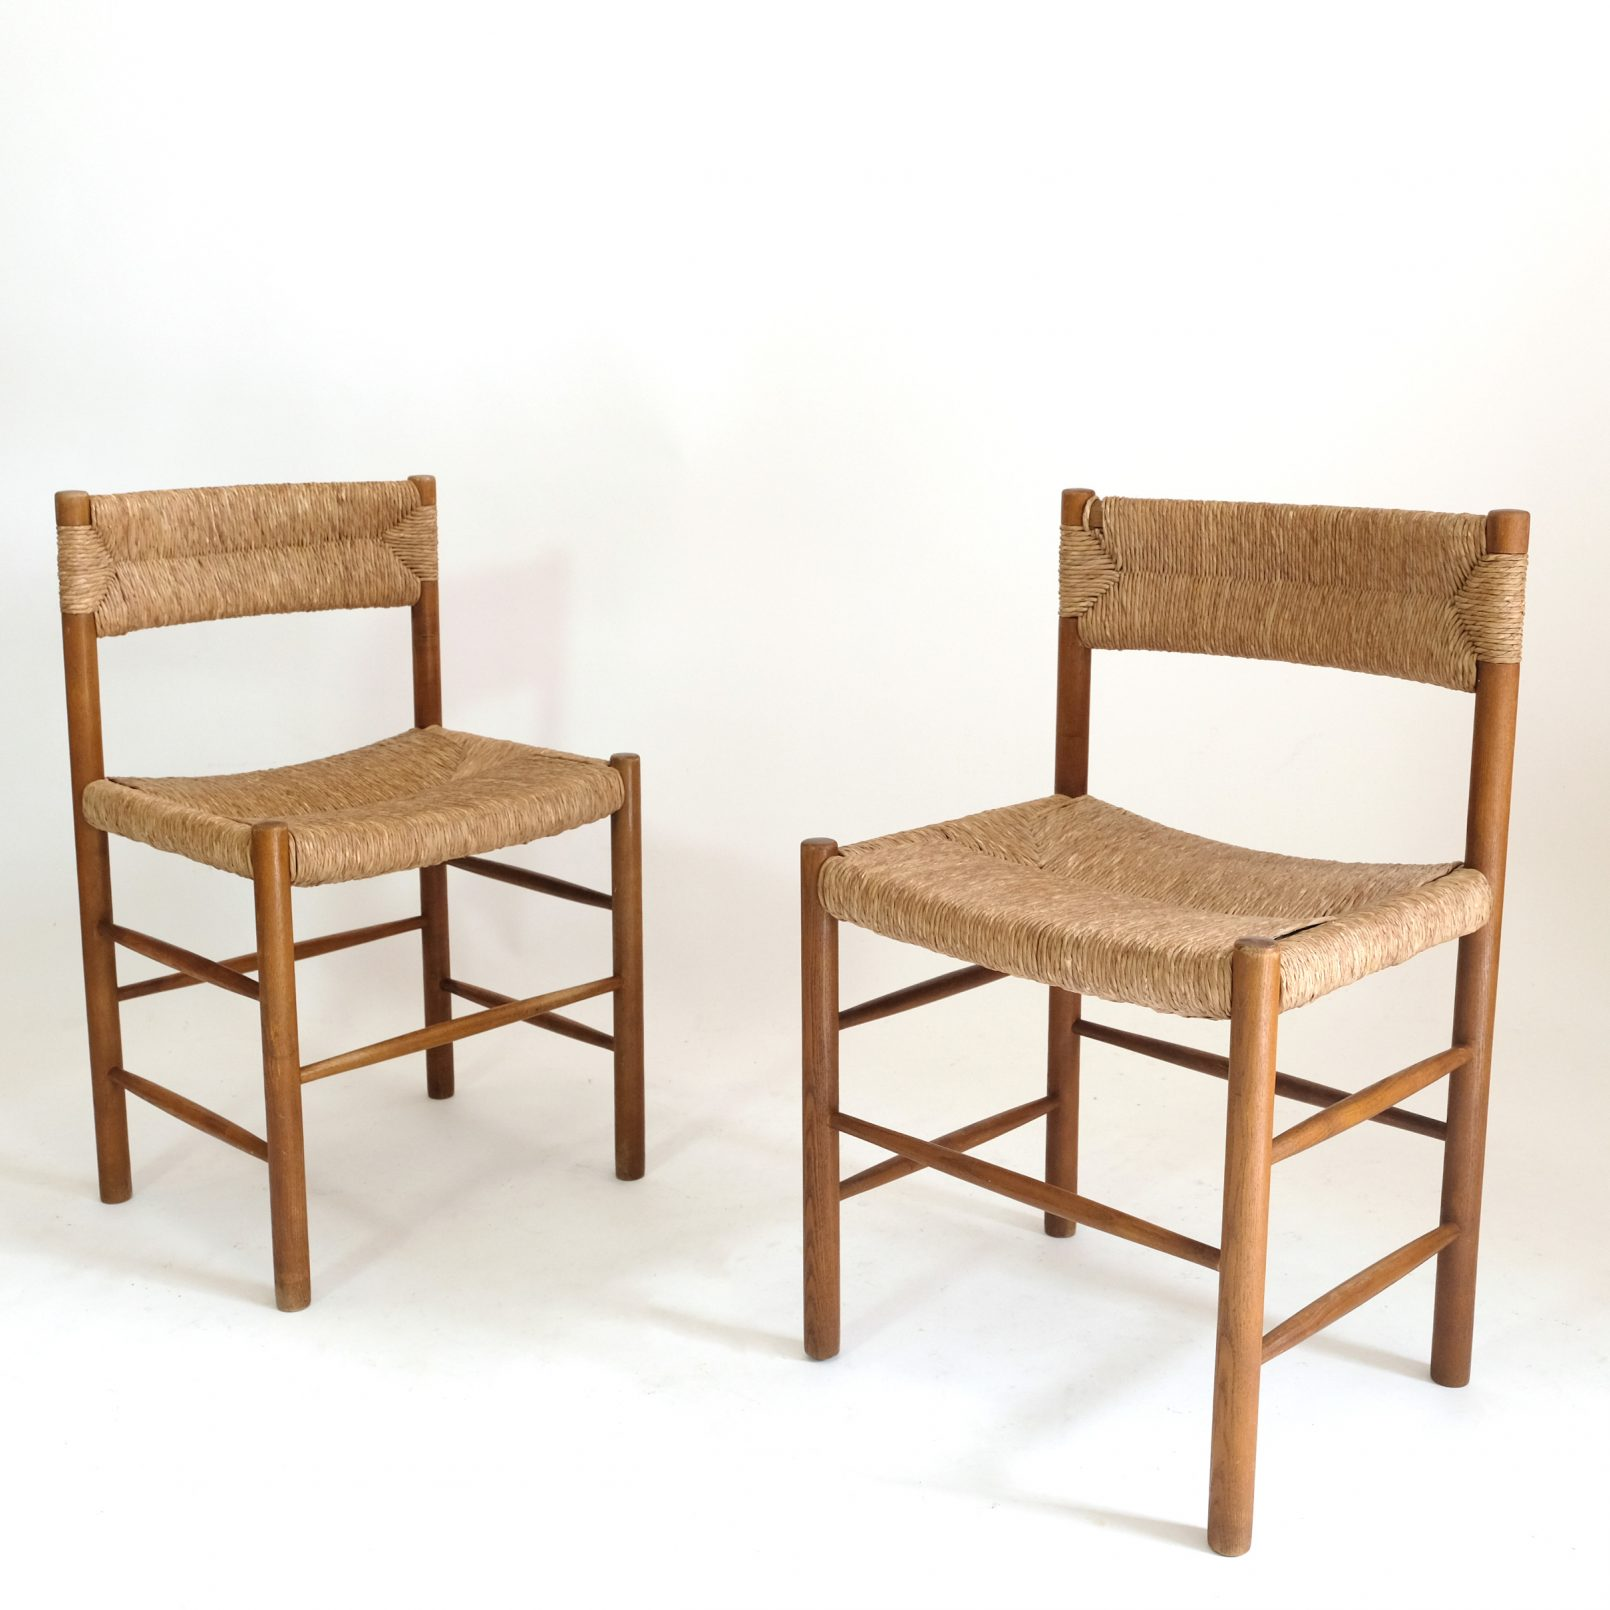 Pair of Dordogne chairs, Sentou, 1950s.